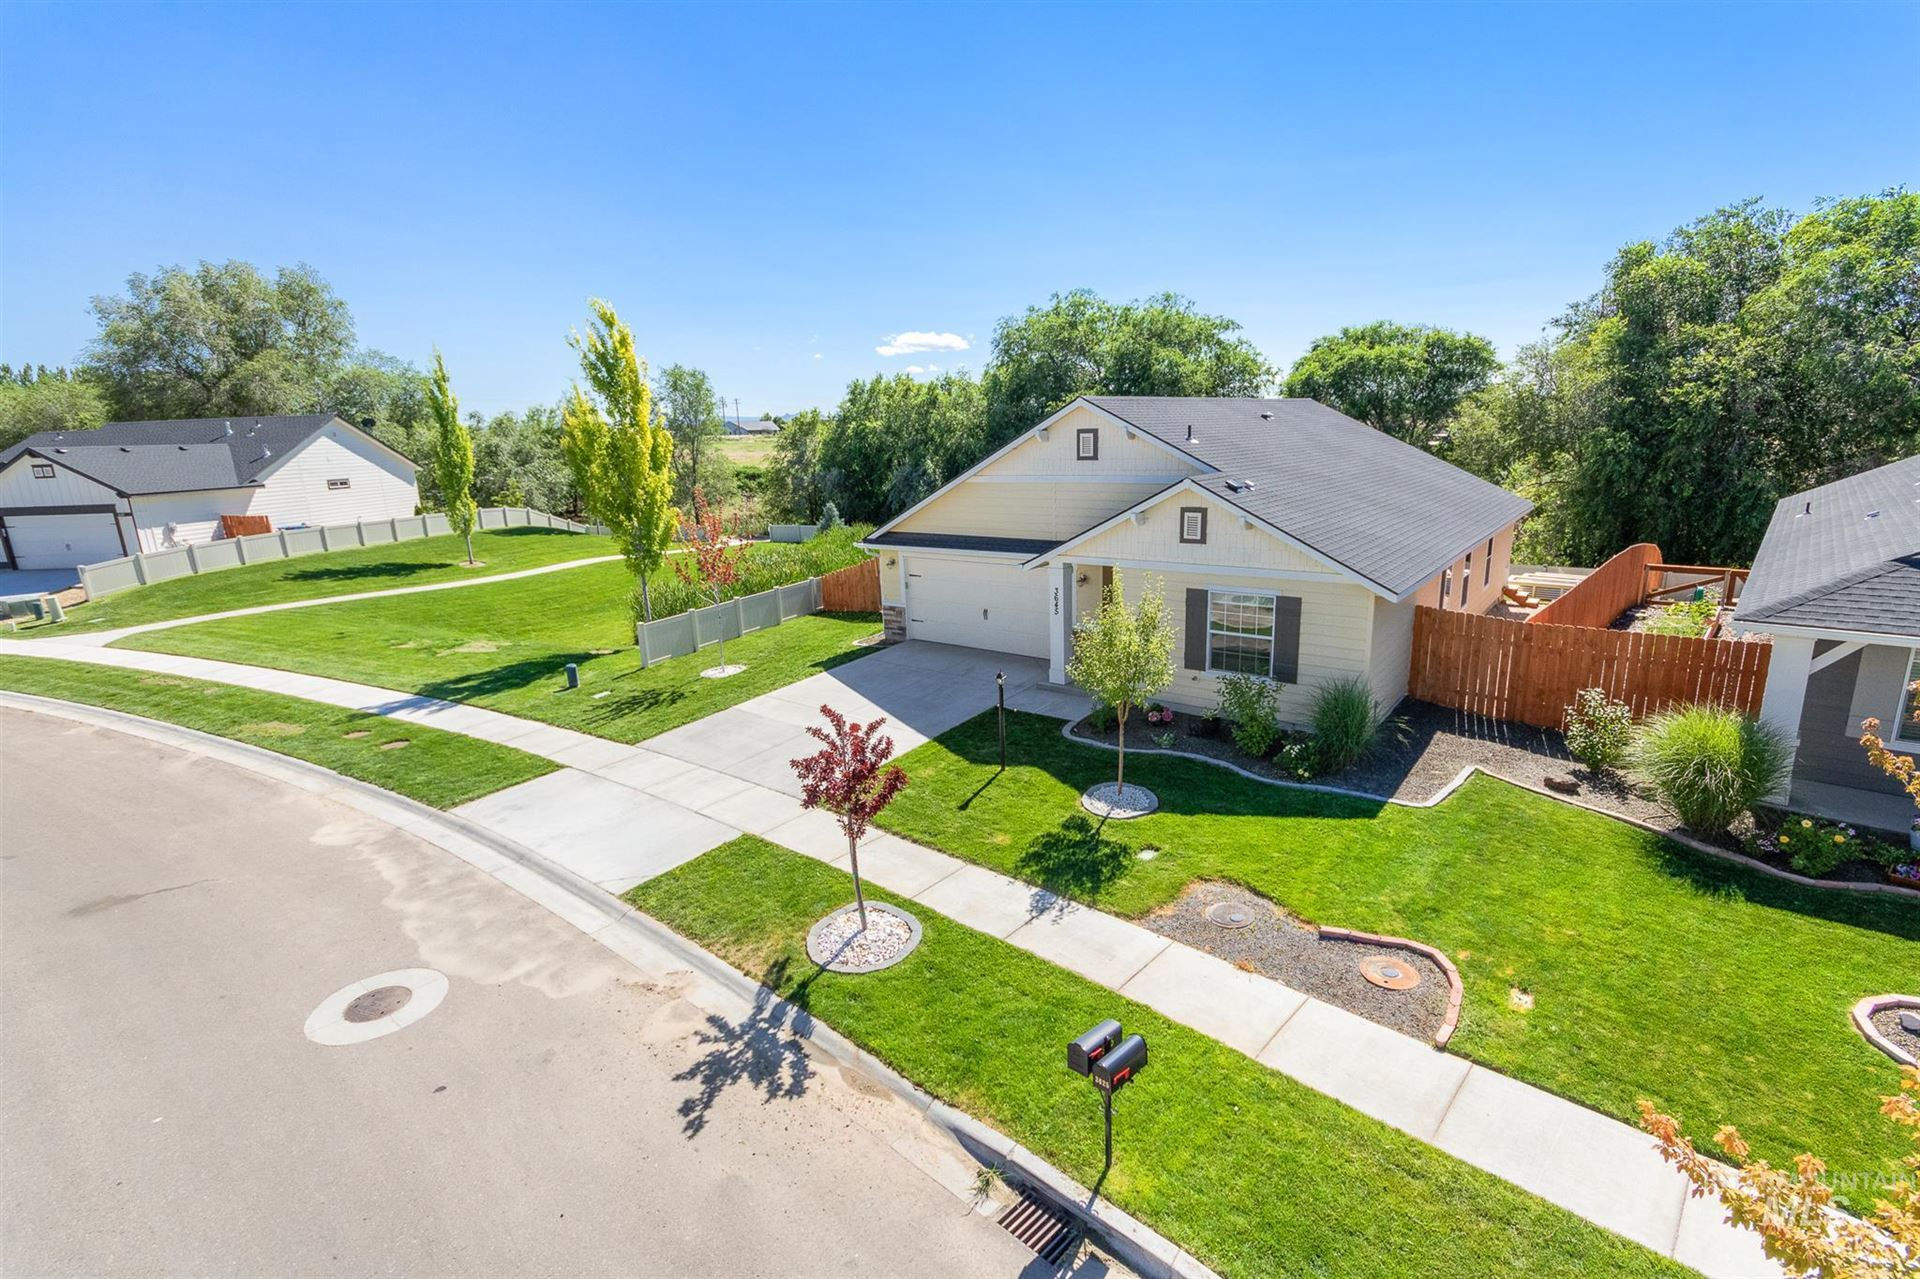 Photo of 3645 S Fork Ave., Nampa, ID 83686 (MLS # 98772454)